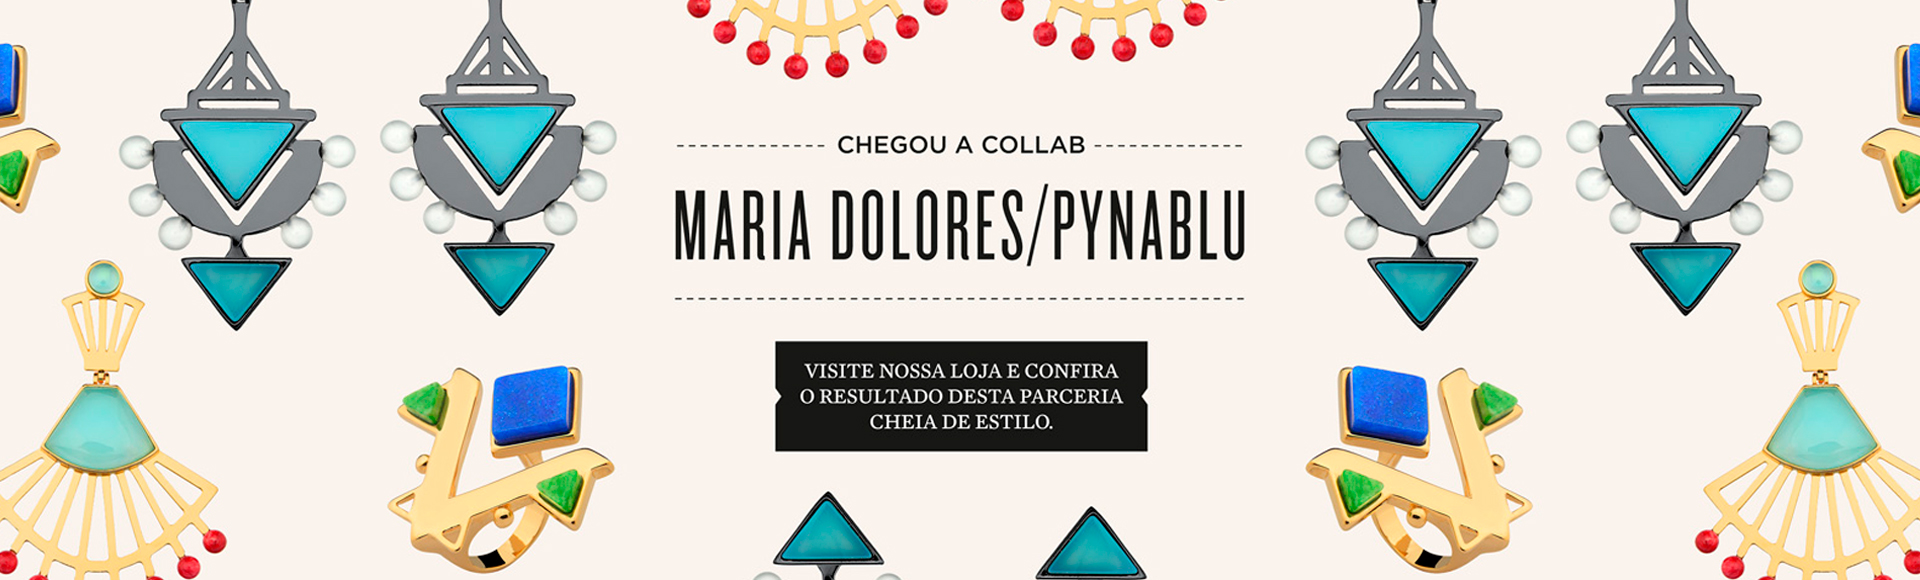 Maria Dolores + Pynablu